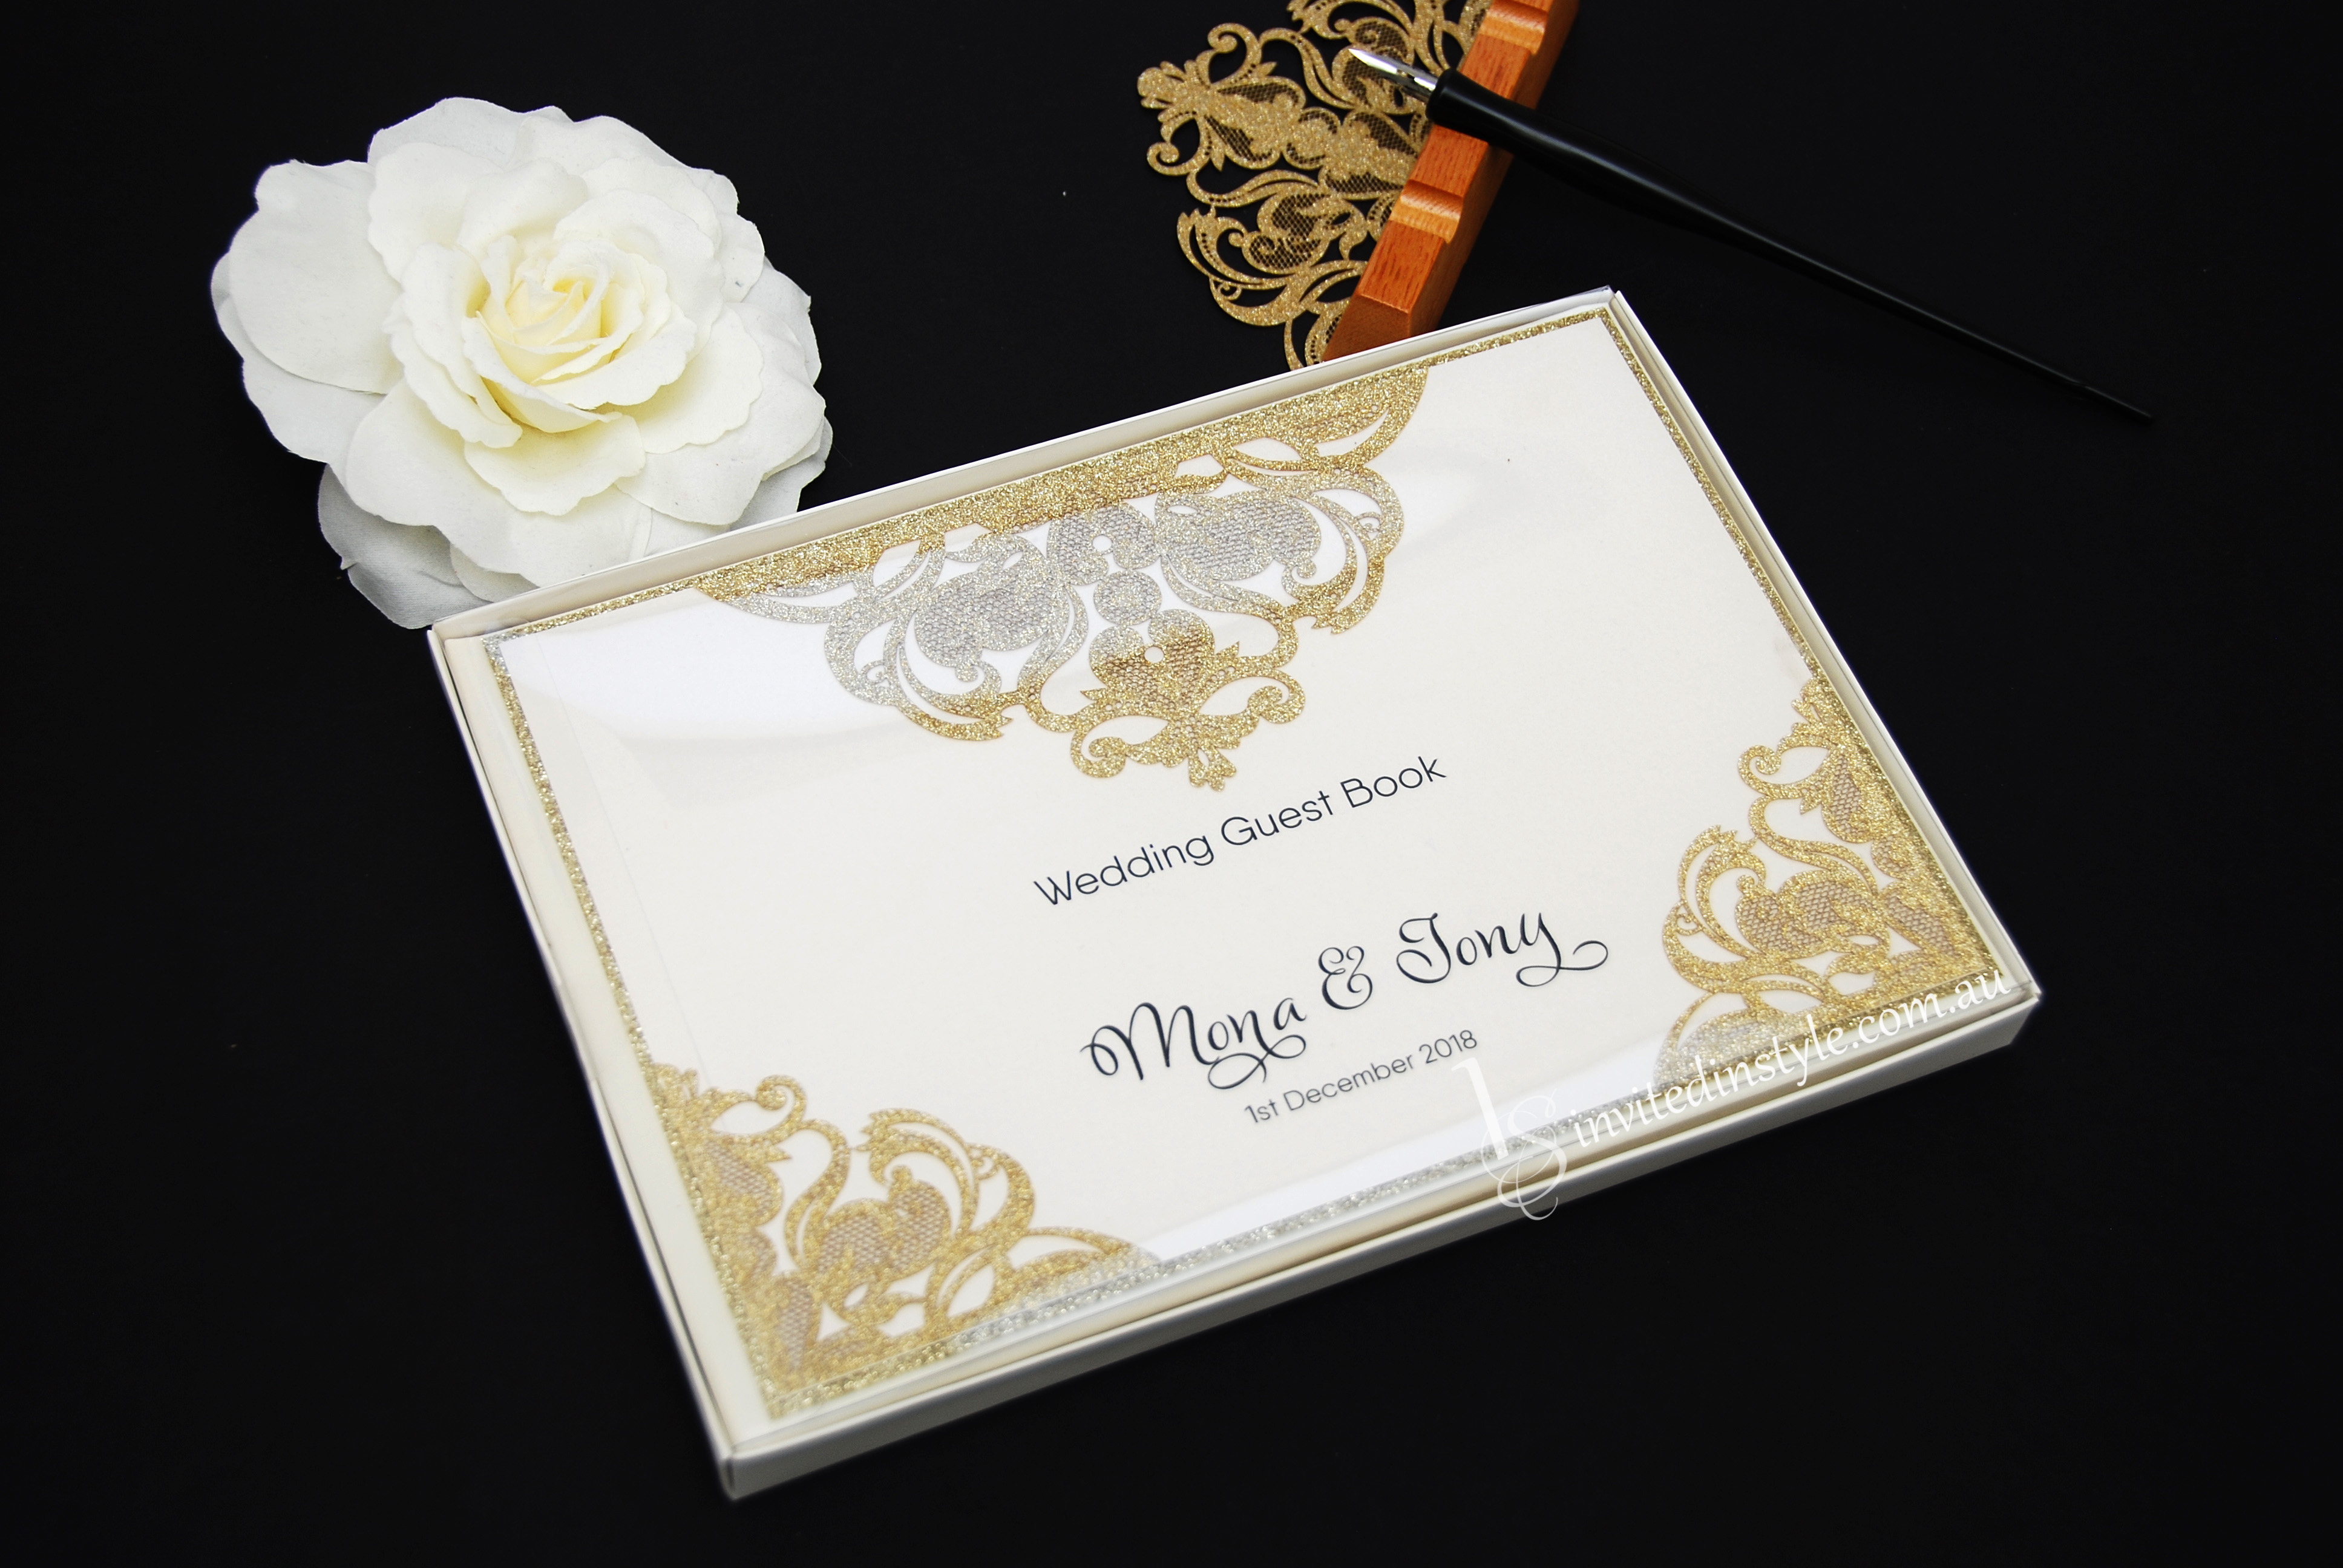 Guest Books | Invited in Style